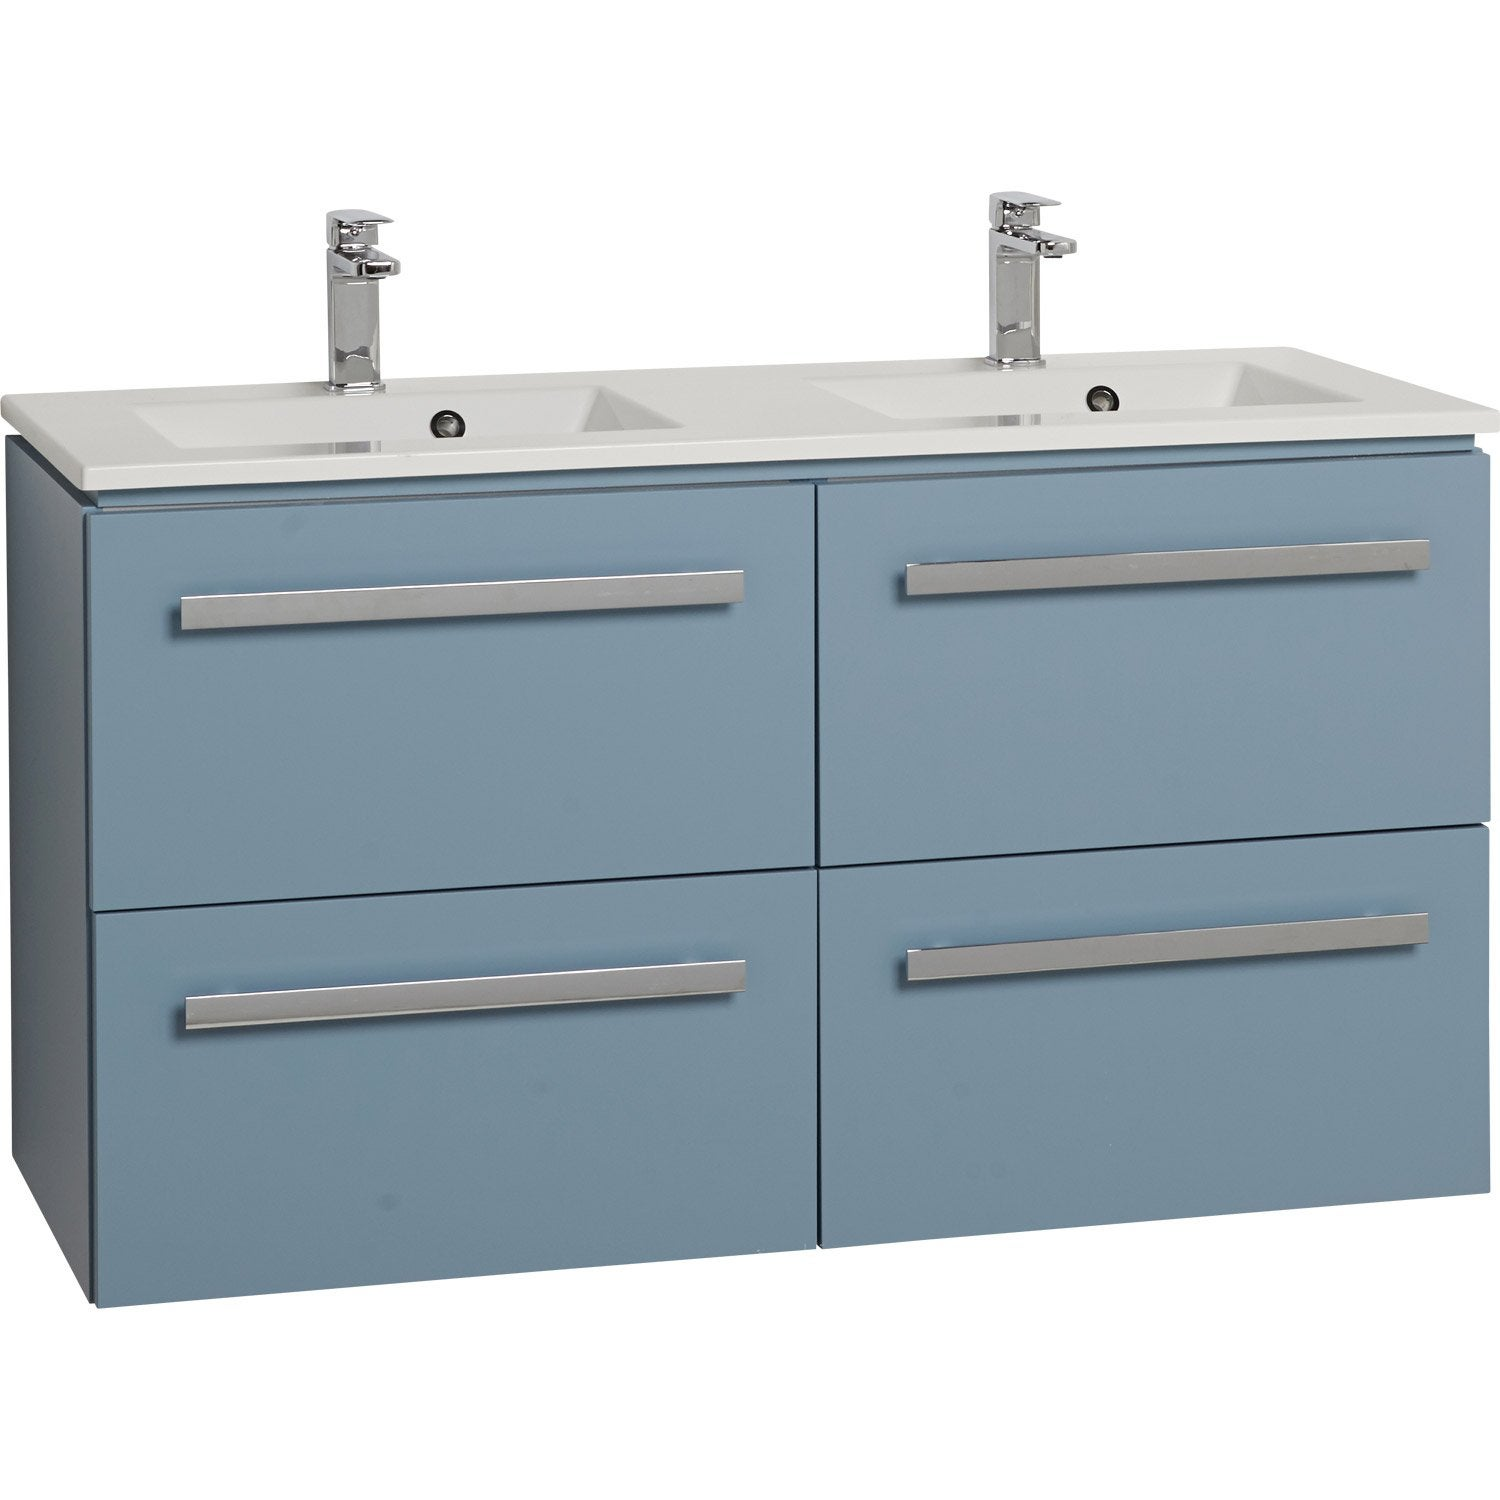 Table rabattable cuisine paris meuble vasque leroy merlin for Vasque salle de bain leroy merlin